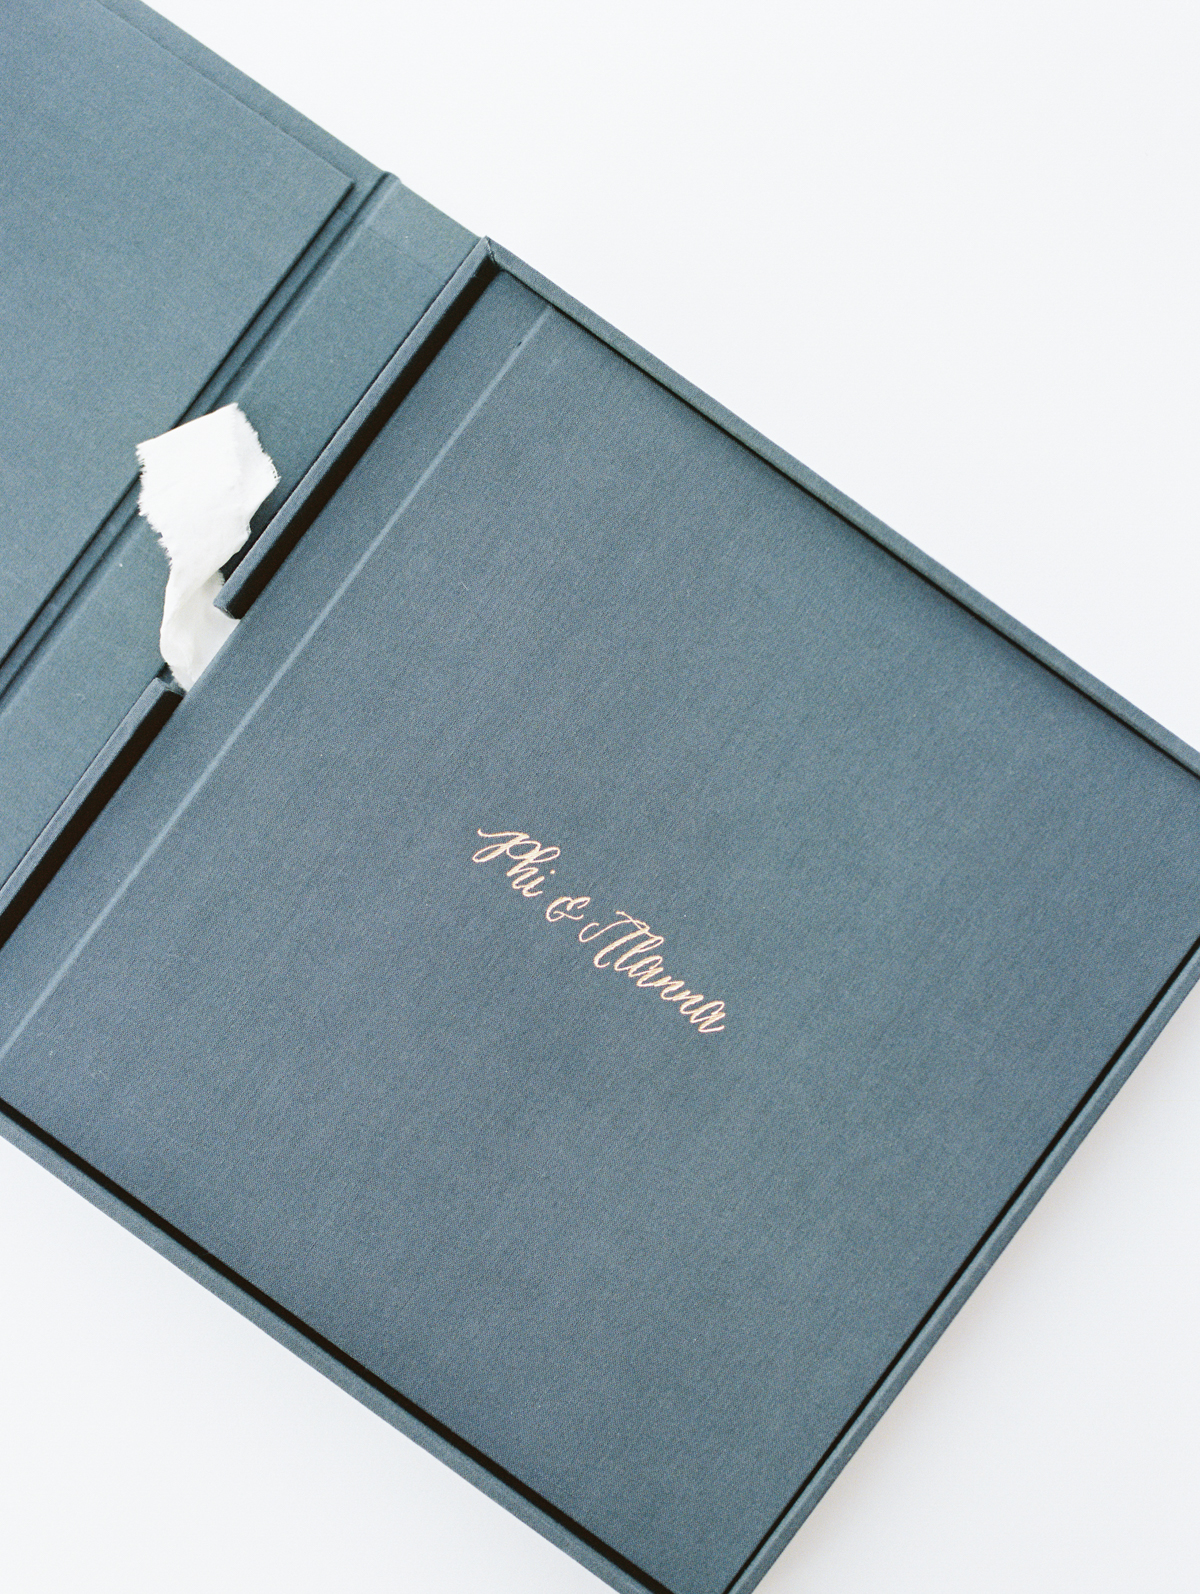 czar goss wedding albums-8.jpg